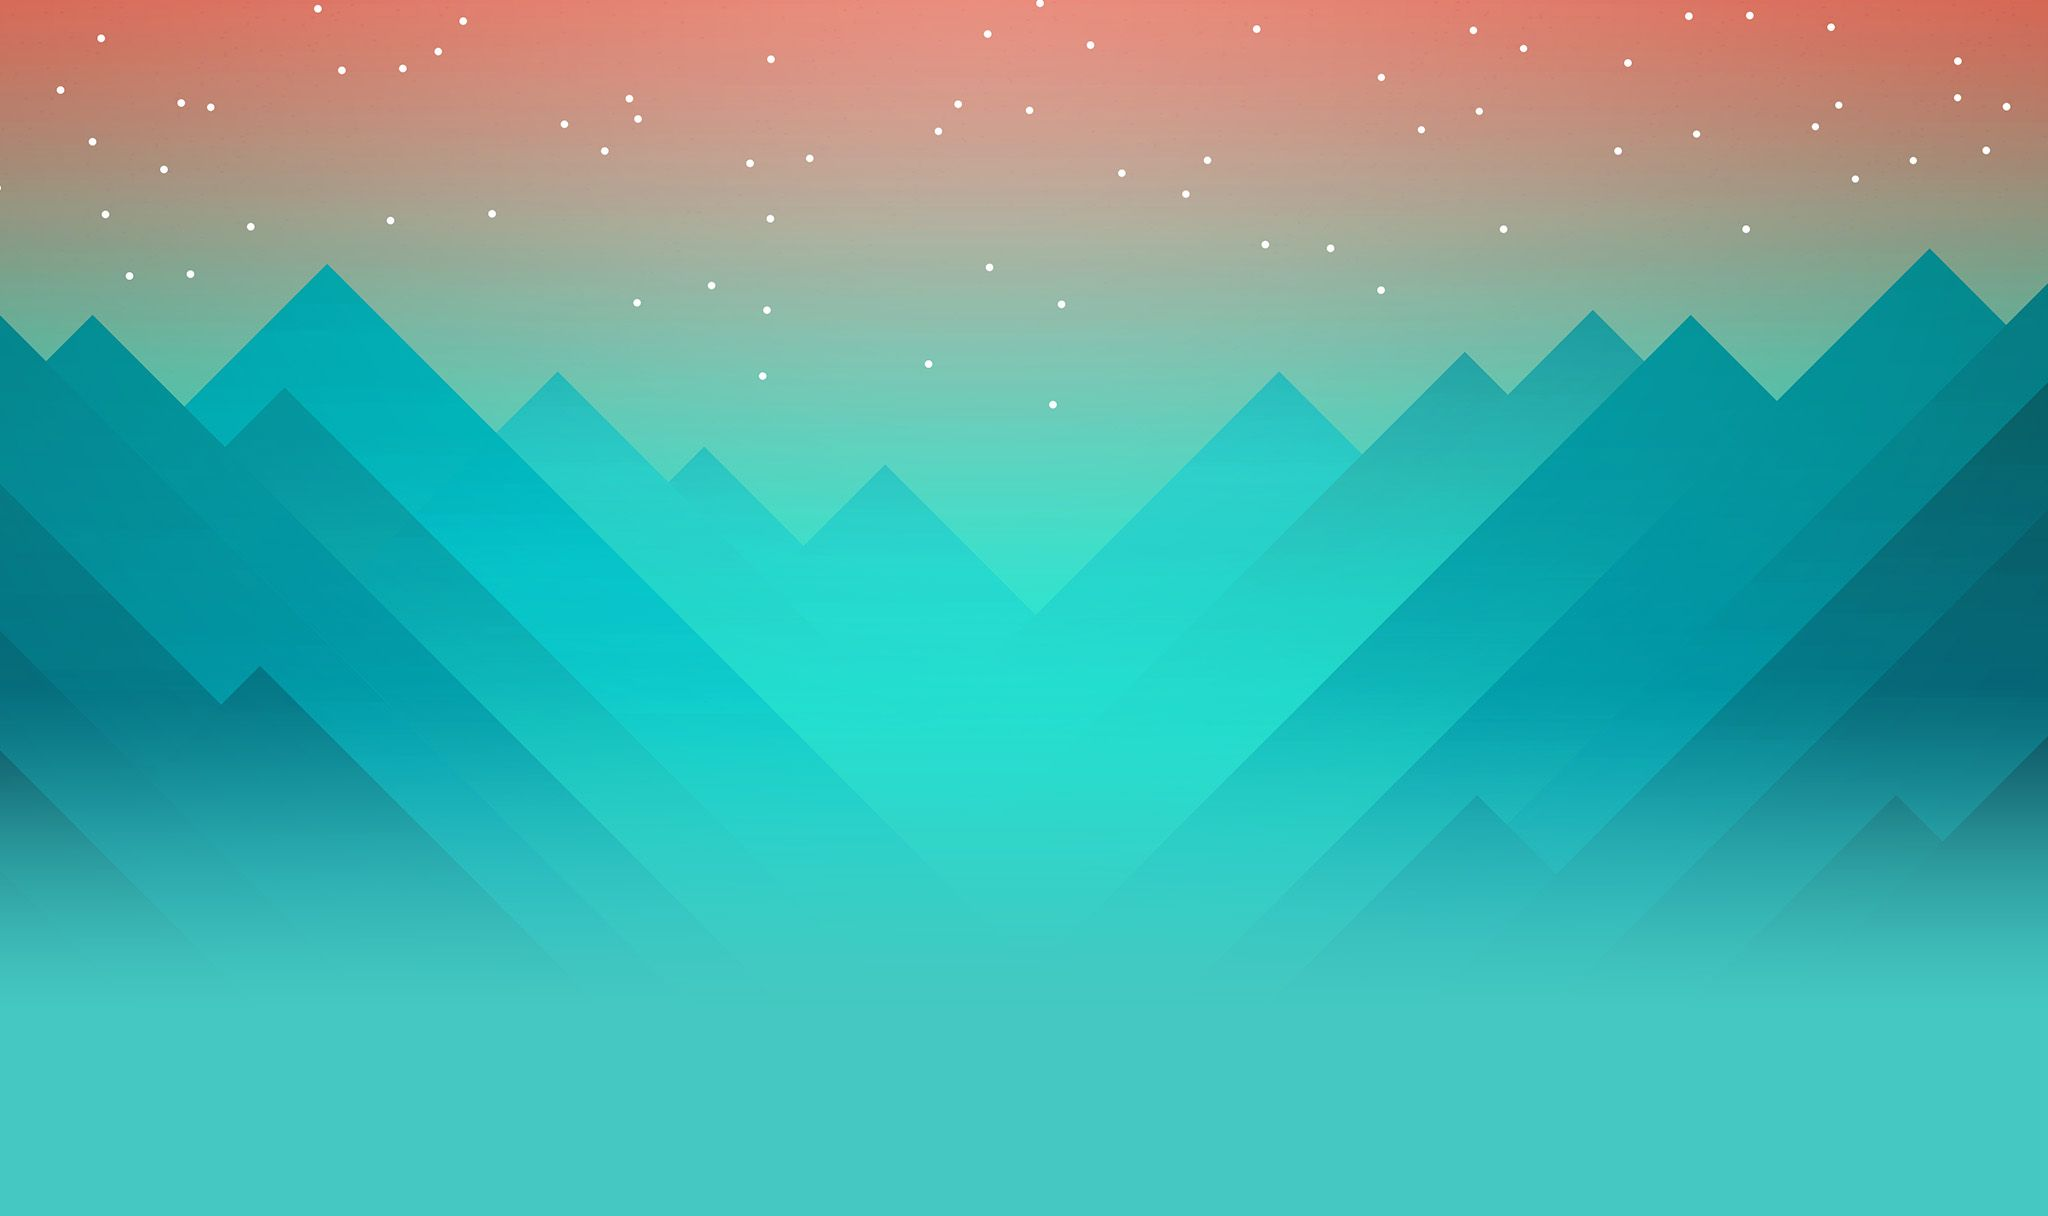 Monument Valley An Ios And Android Game By Ustwo Puc Md